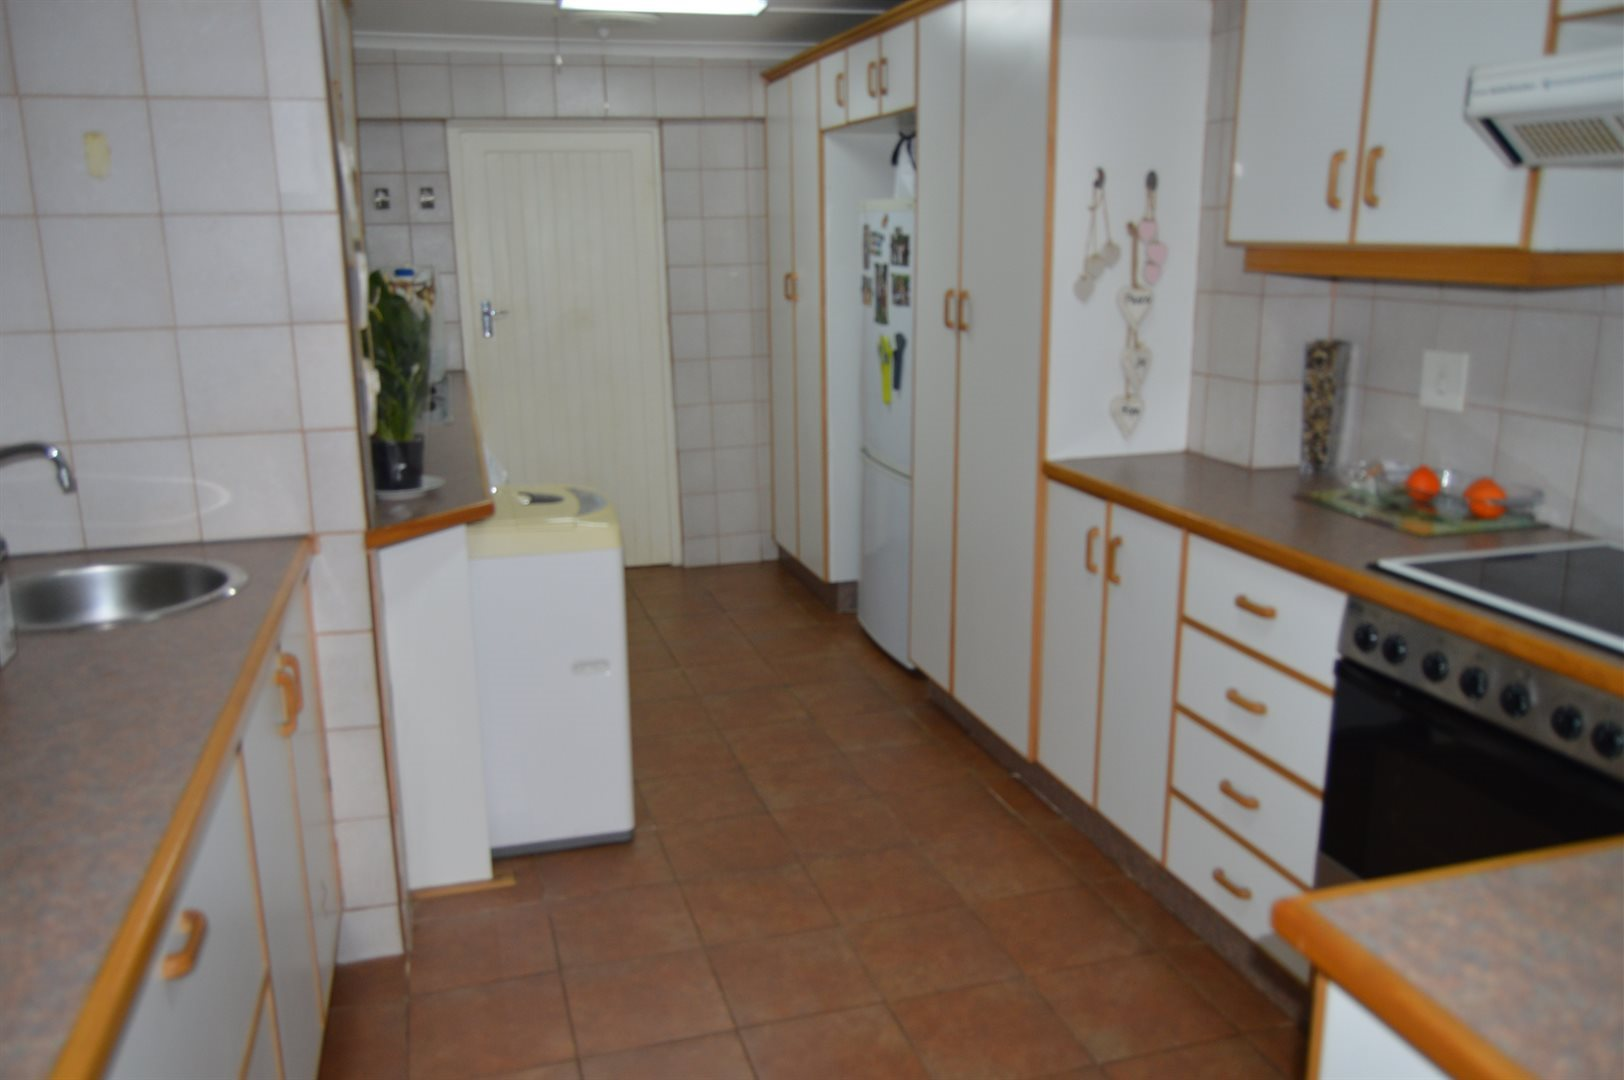 Meer En See property for sale. Ref No: 13514601. Picture no 6